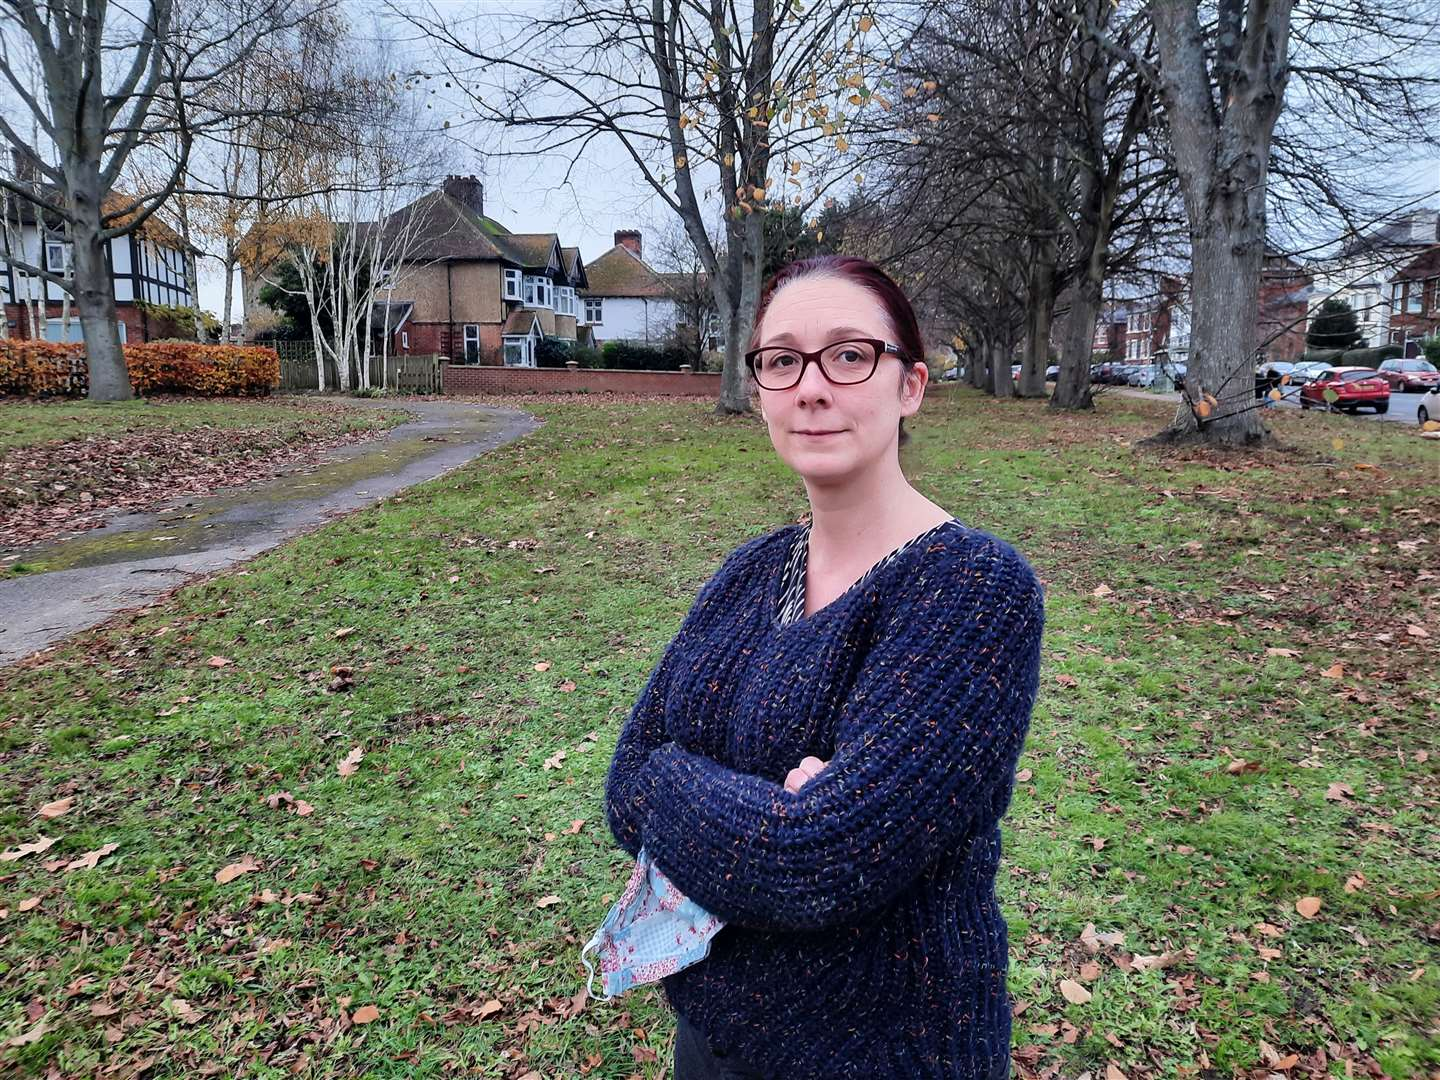 Westgate Court Avenue resident Sophie McCallum is opposed to the plans